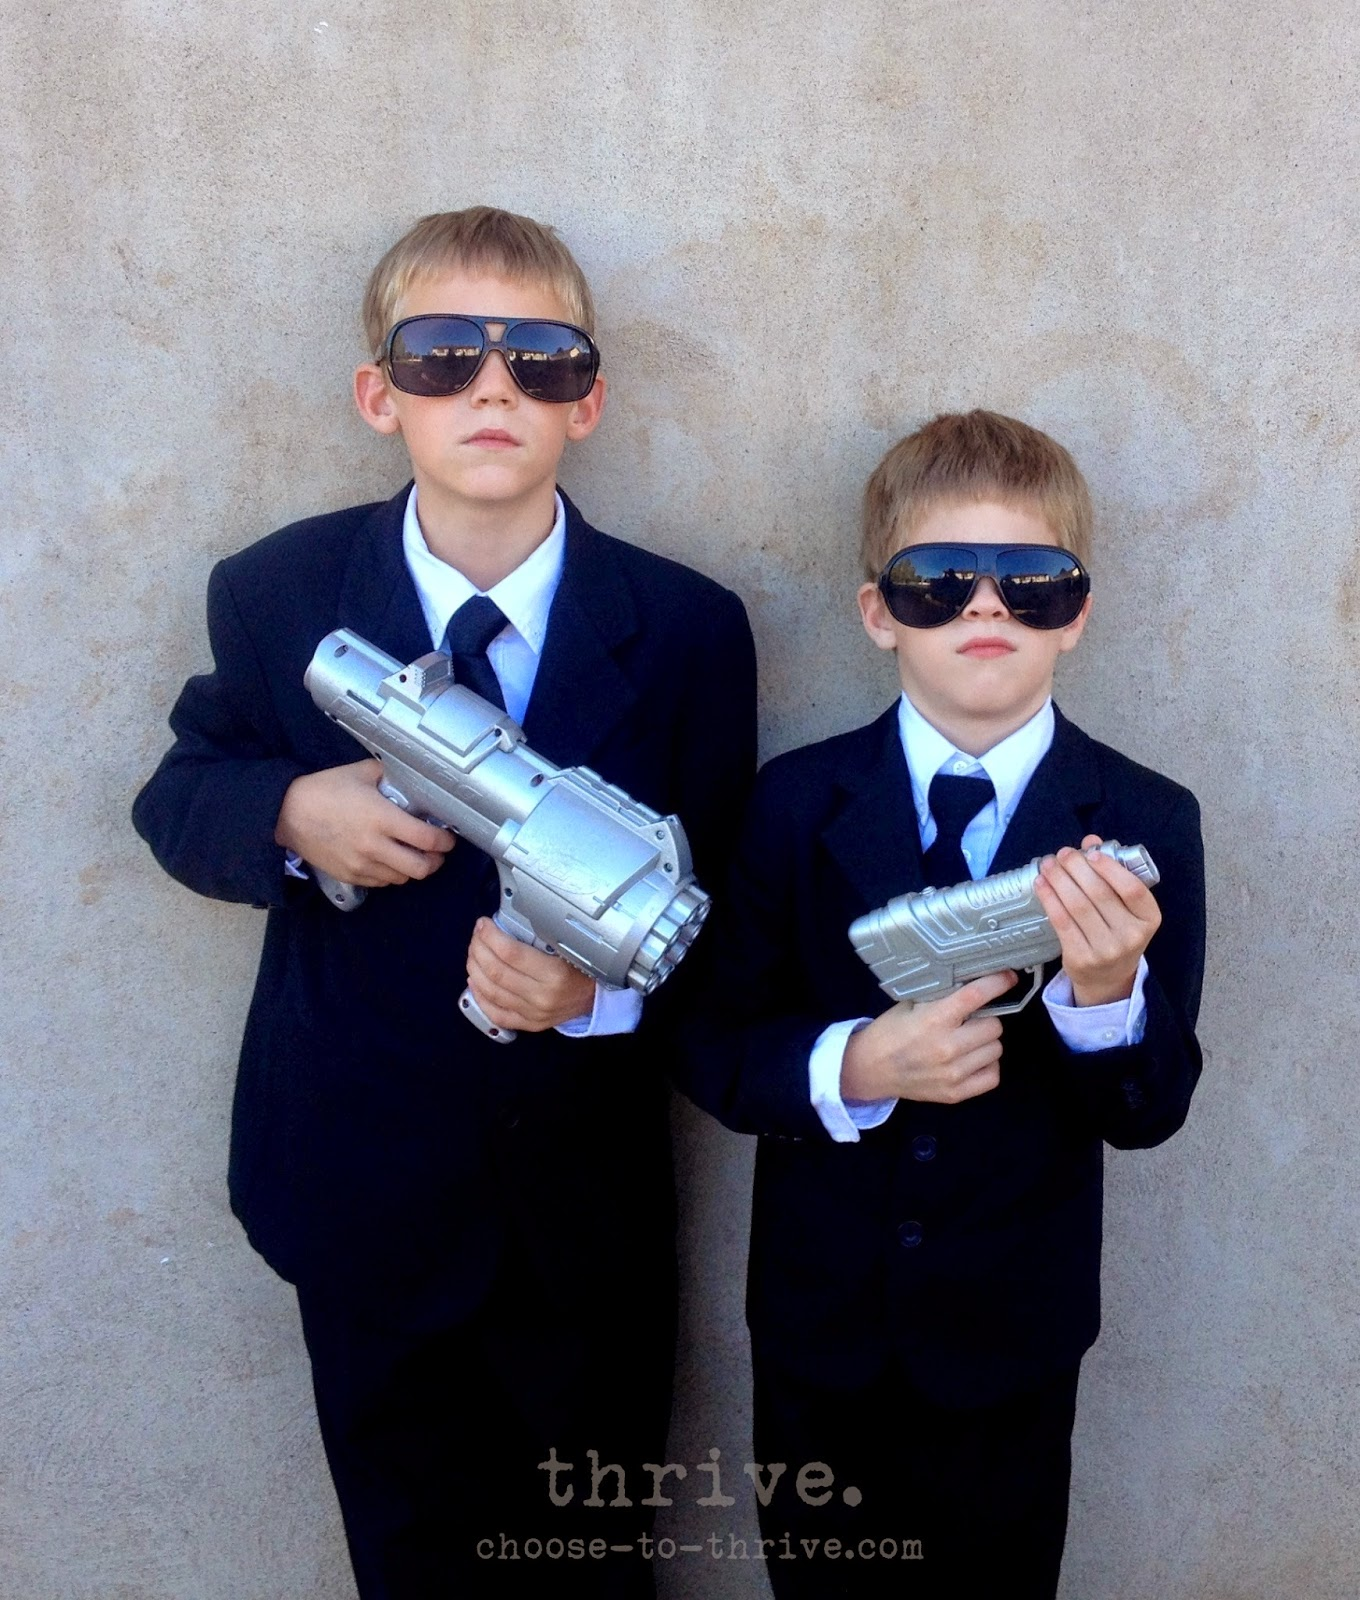 Thrive 100 Simple Halloween Costumes That You Probably Have In Your Closet